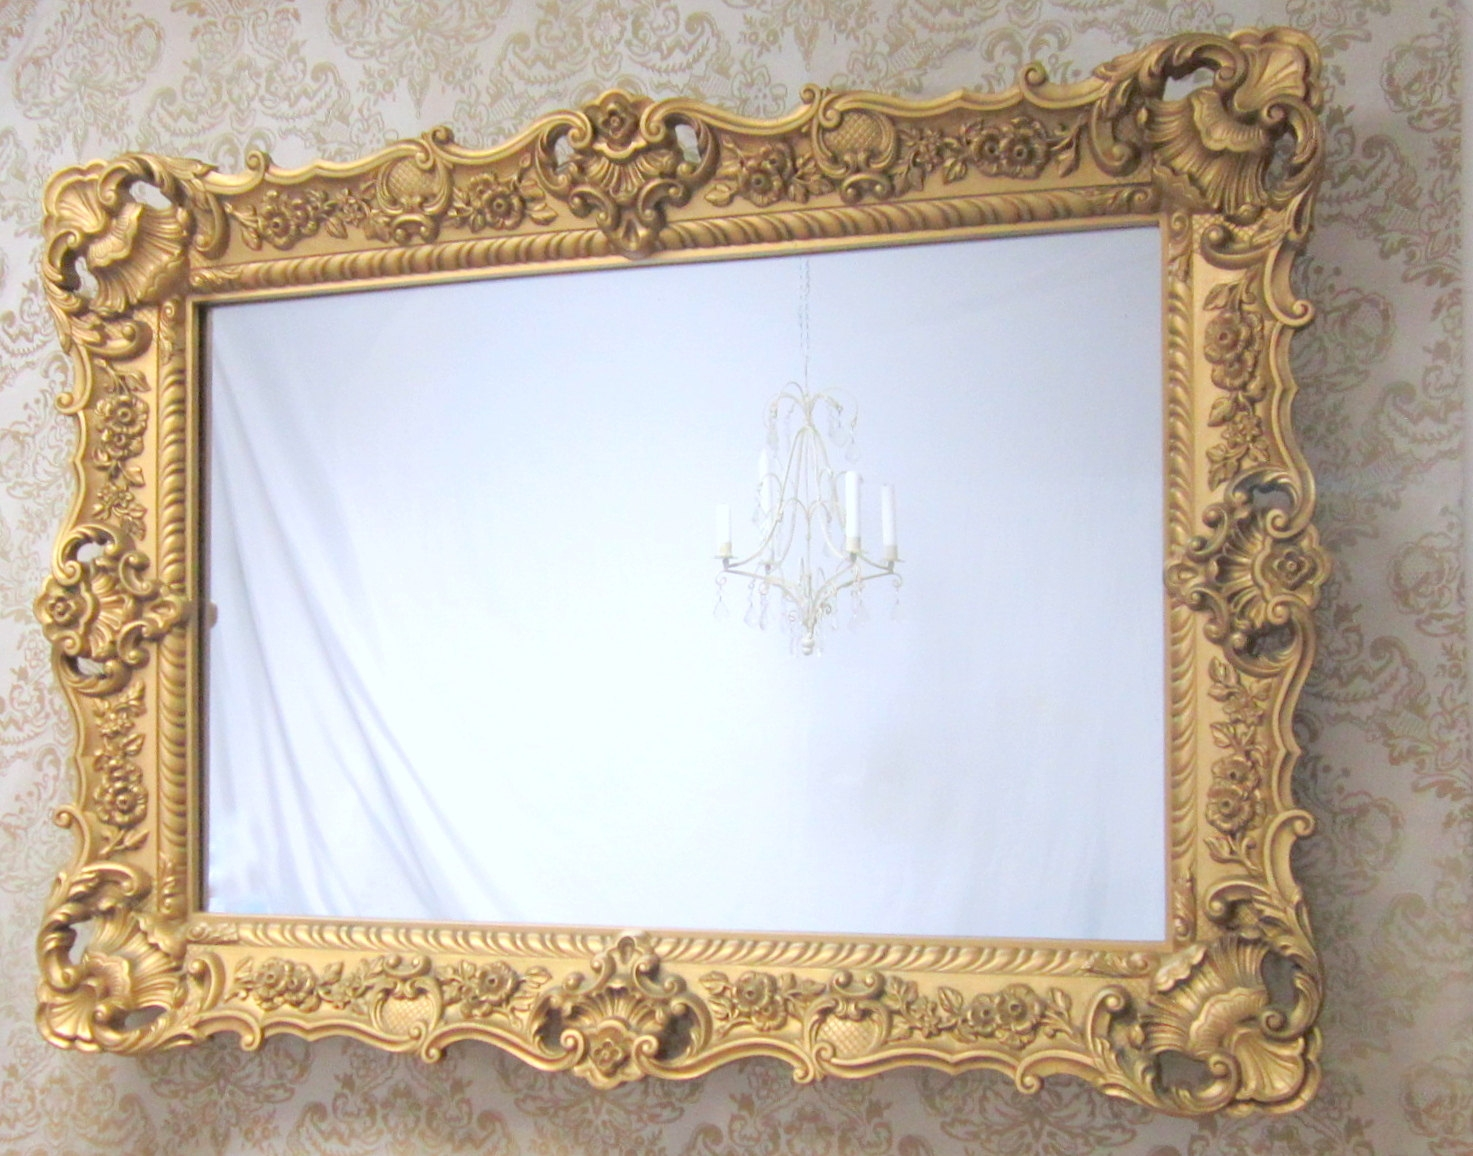 Ornate Wall Mirror 56x 32 Dressing Room Baroque Decorative Long For Long Mirrors For Sale (Image 13 of 15)